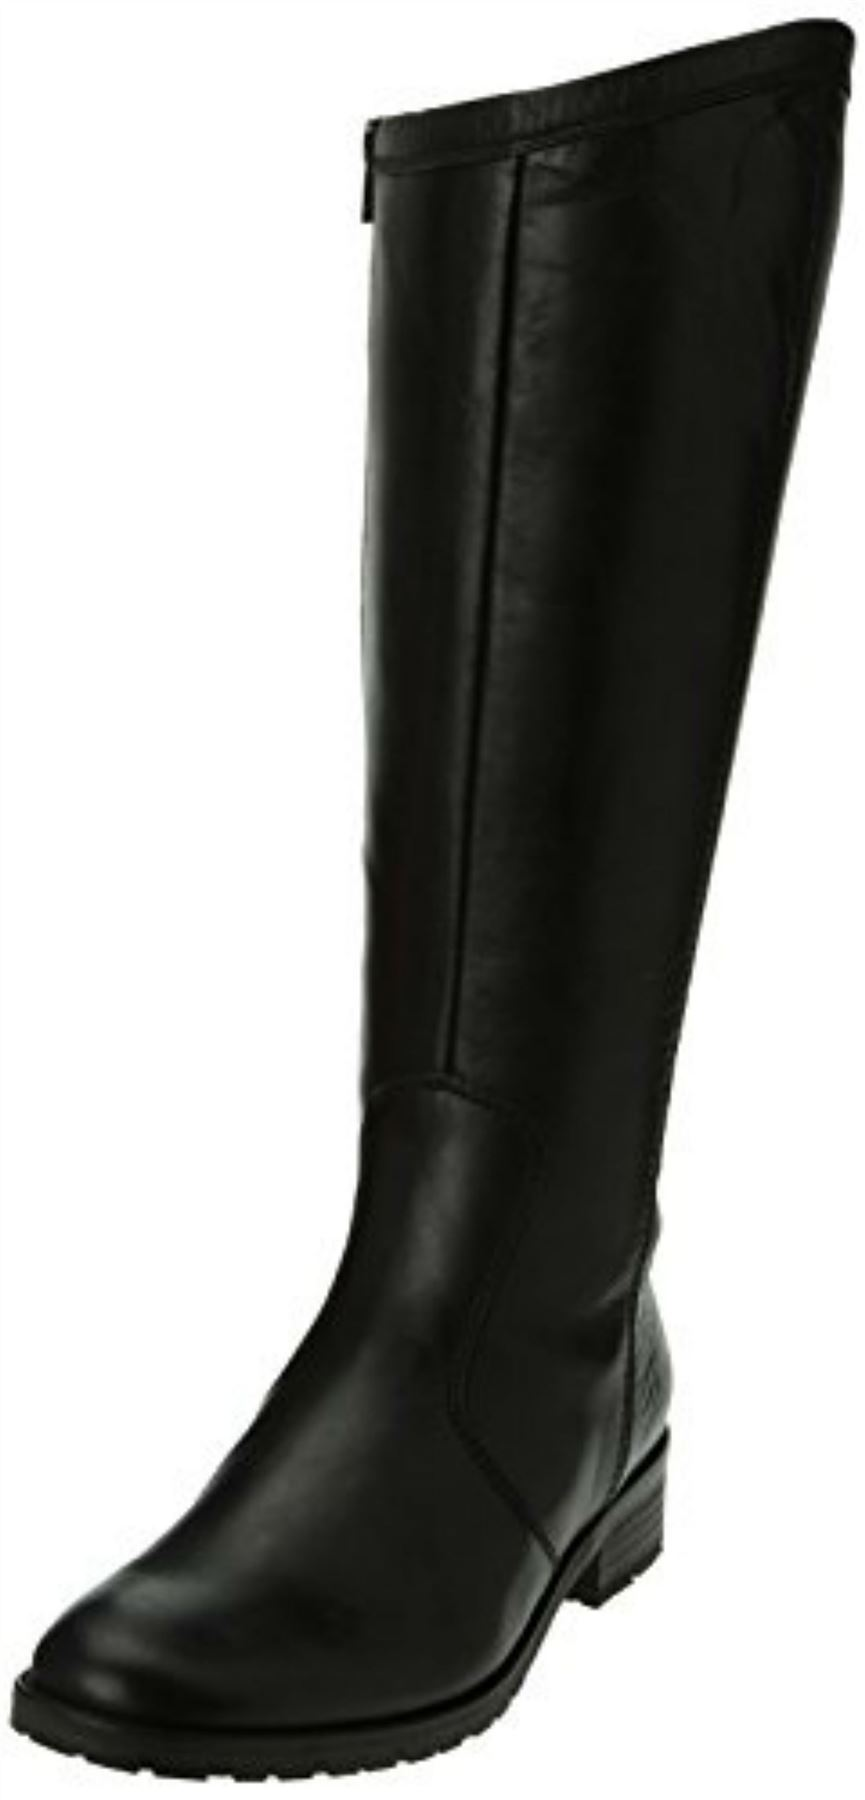 gabor knee high boots the style 92 774 w ebay